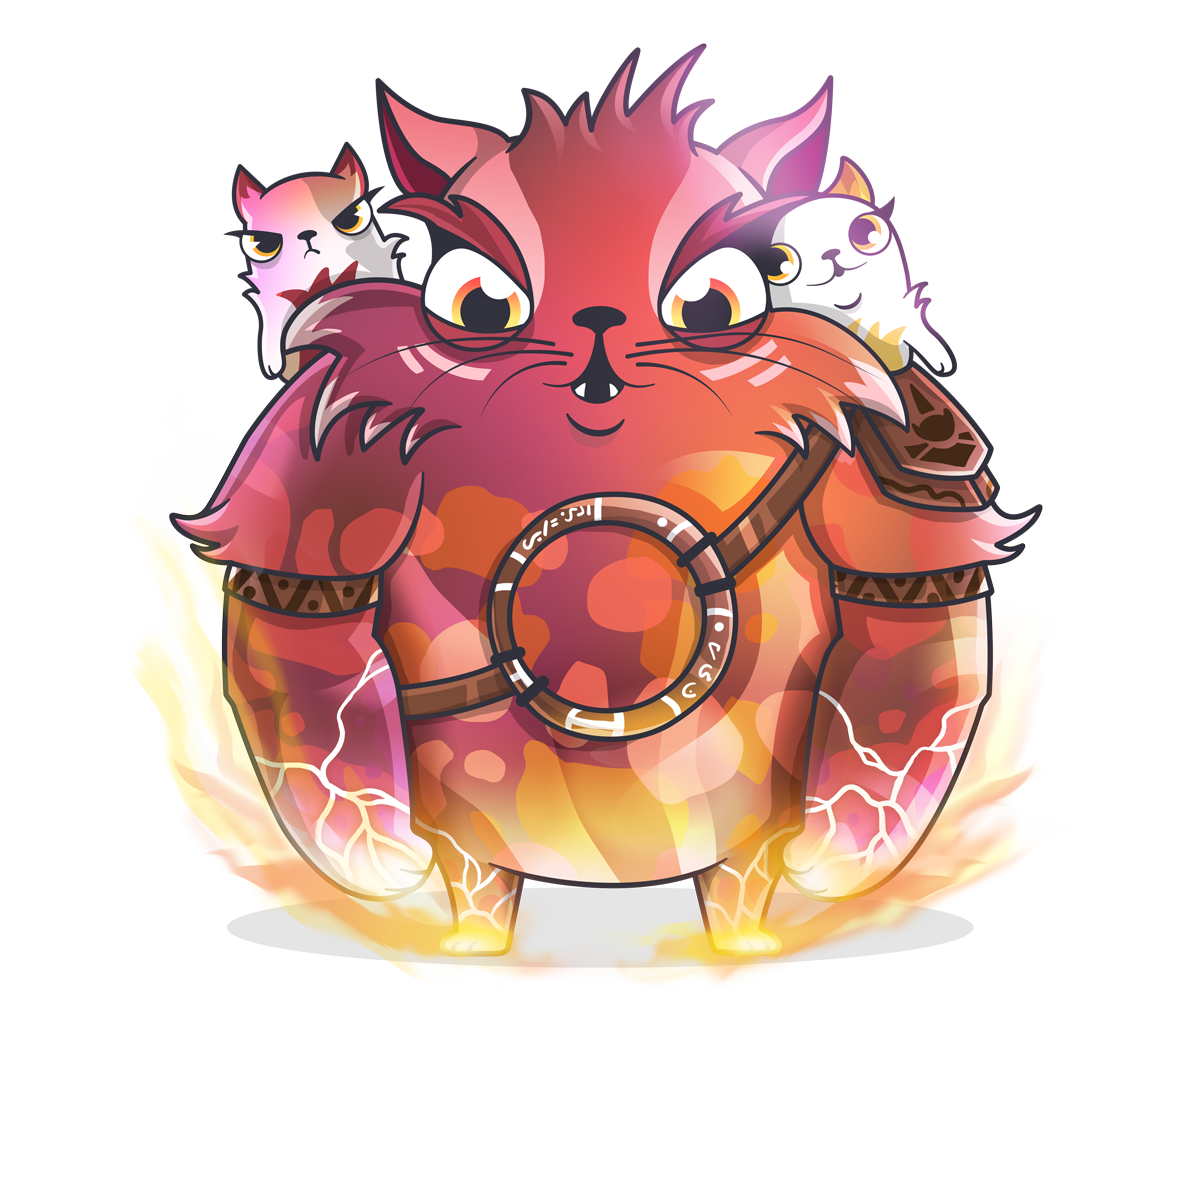 cryptokitty #1820192